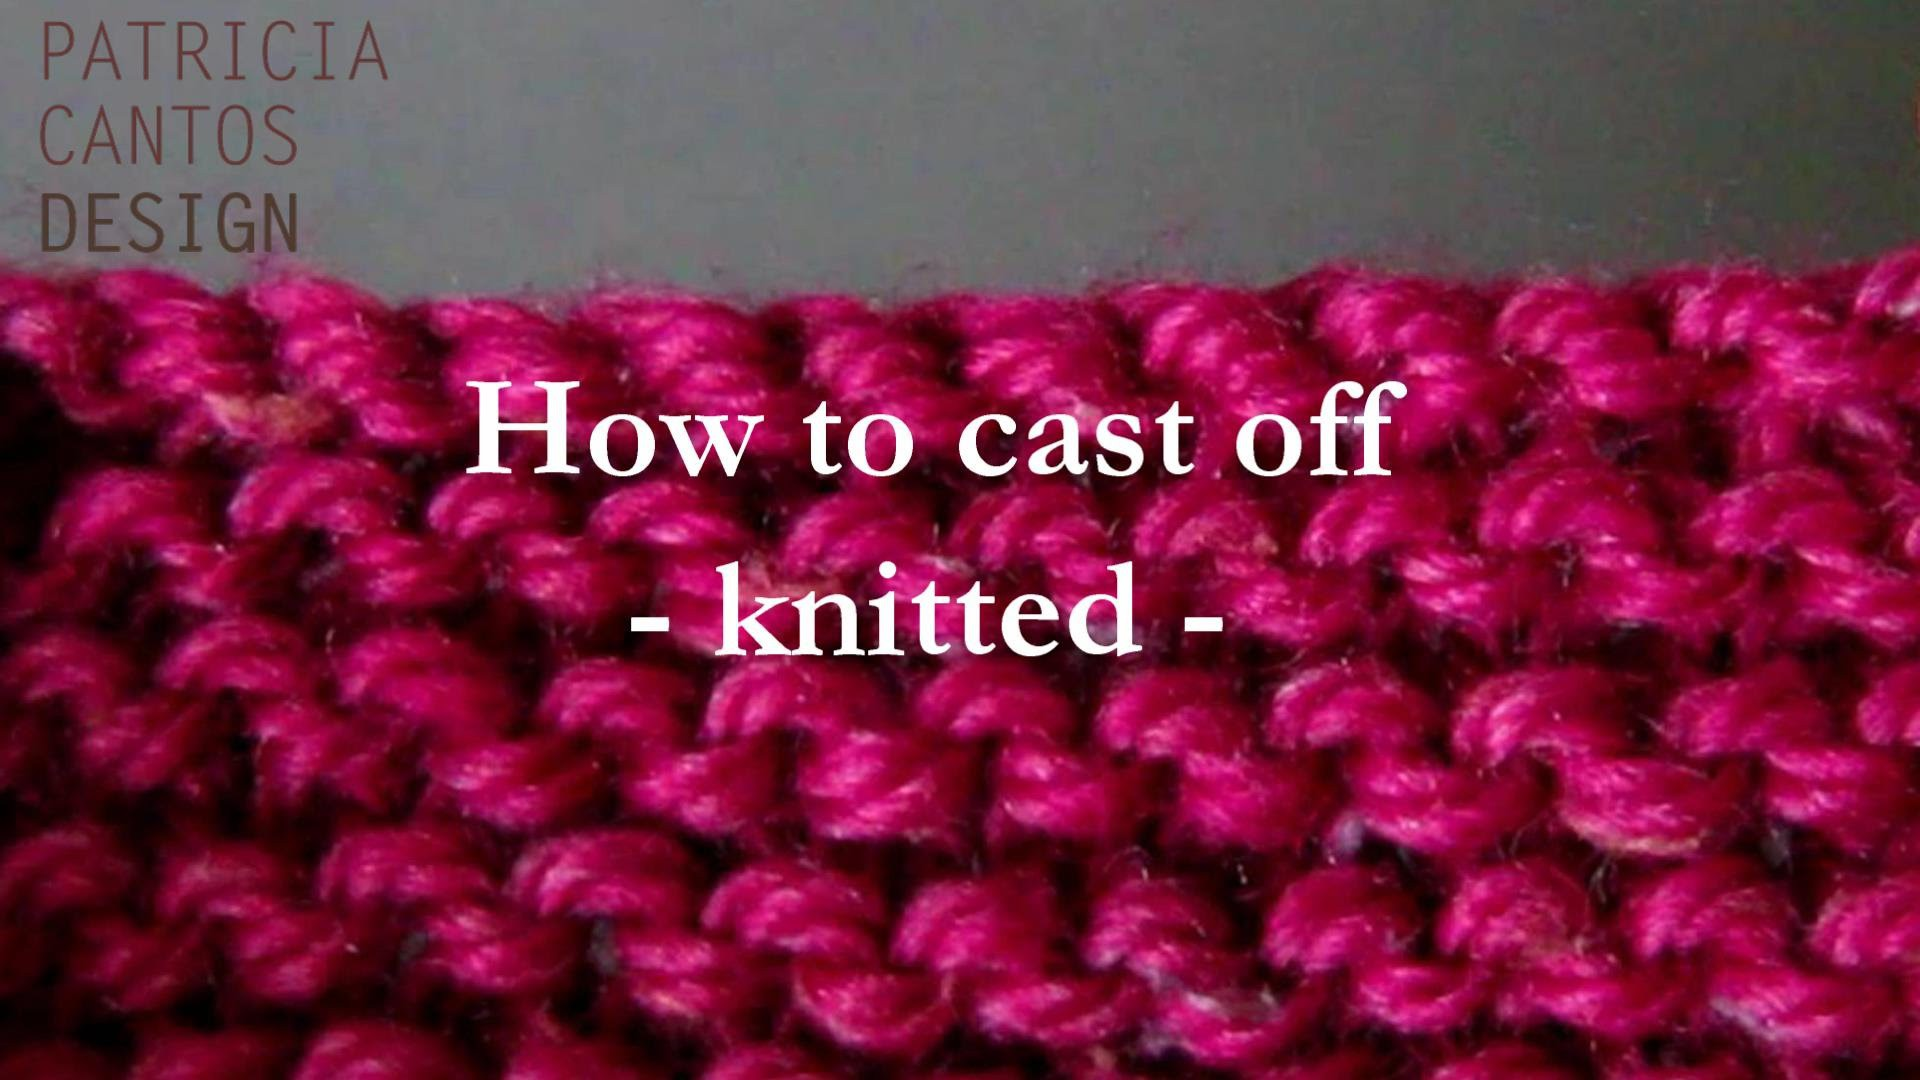 How to cast off knitting - knitted cast off